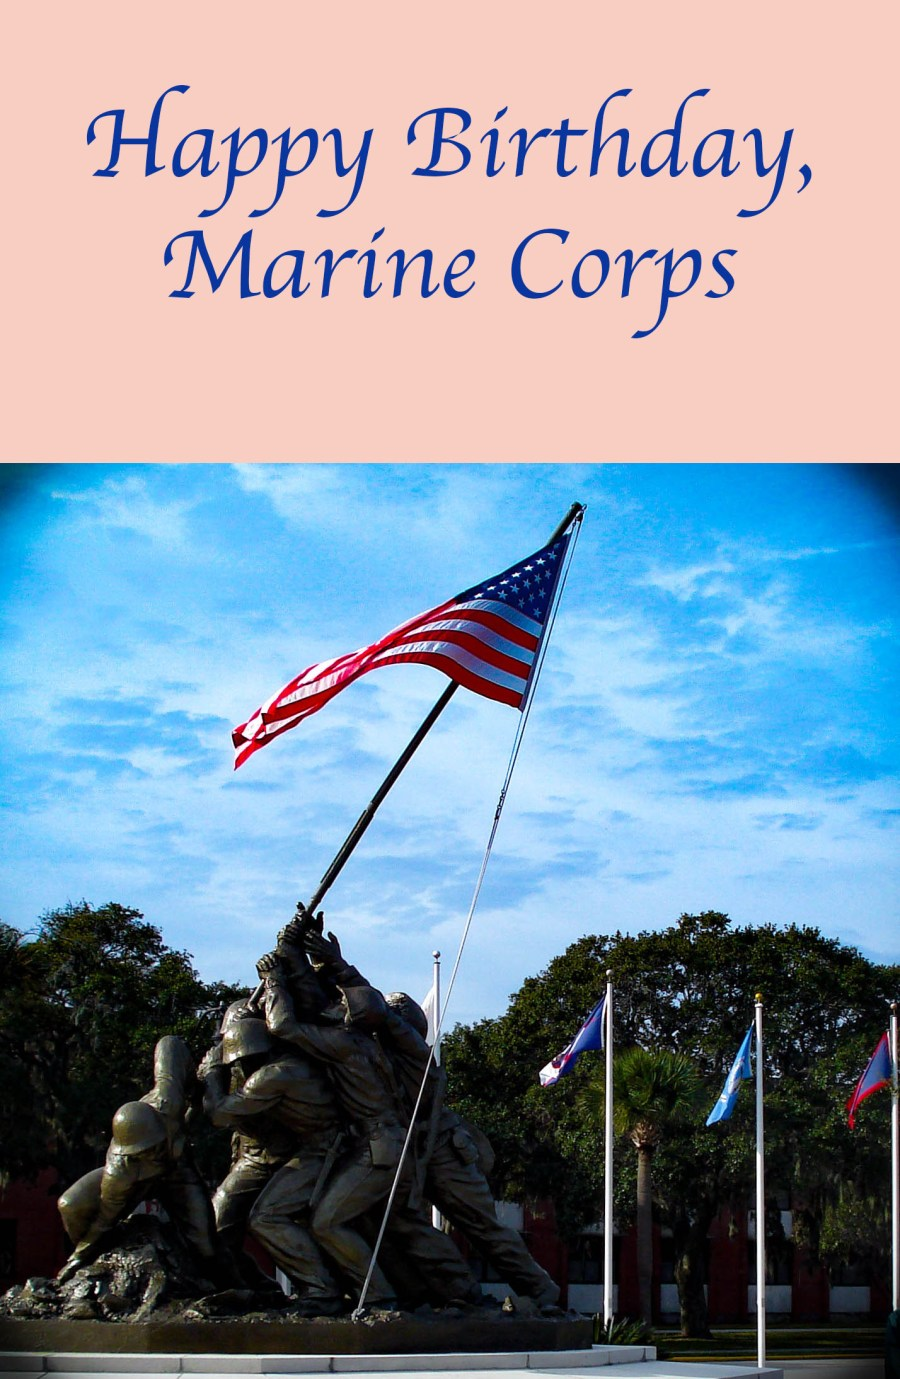 November 10 marks the birthday of the United States Marine Corps.